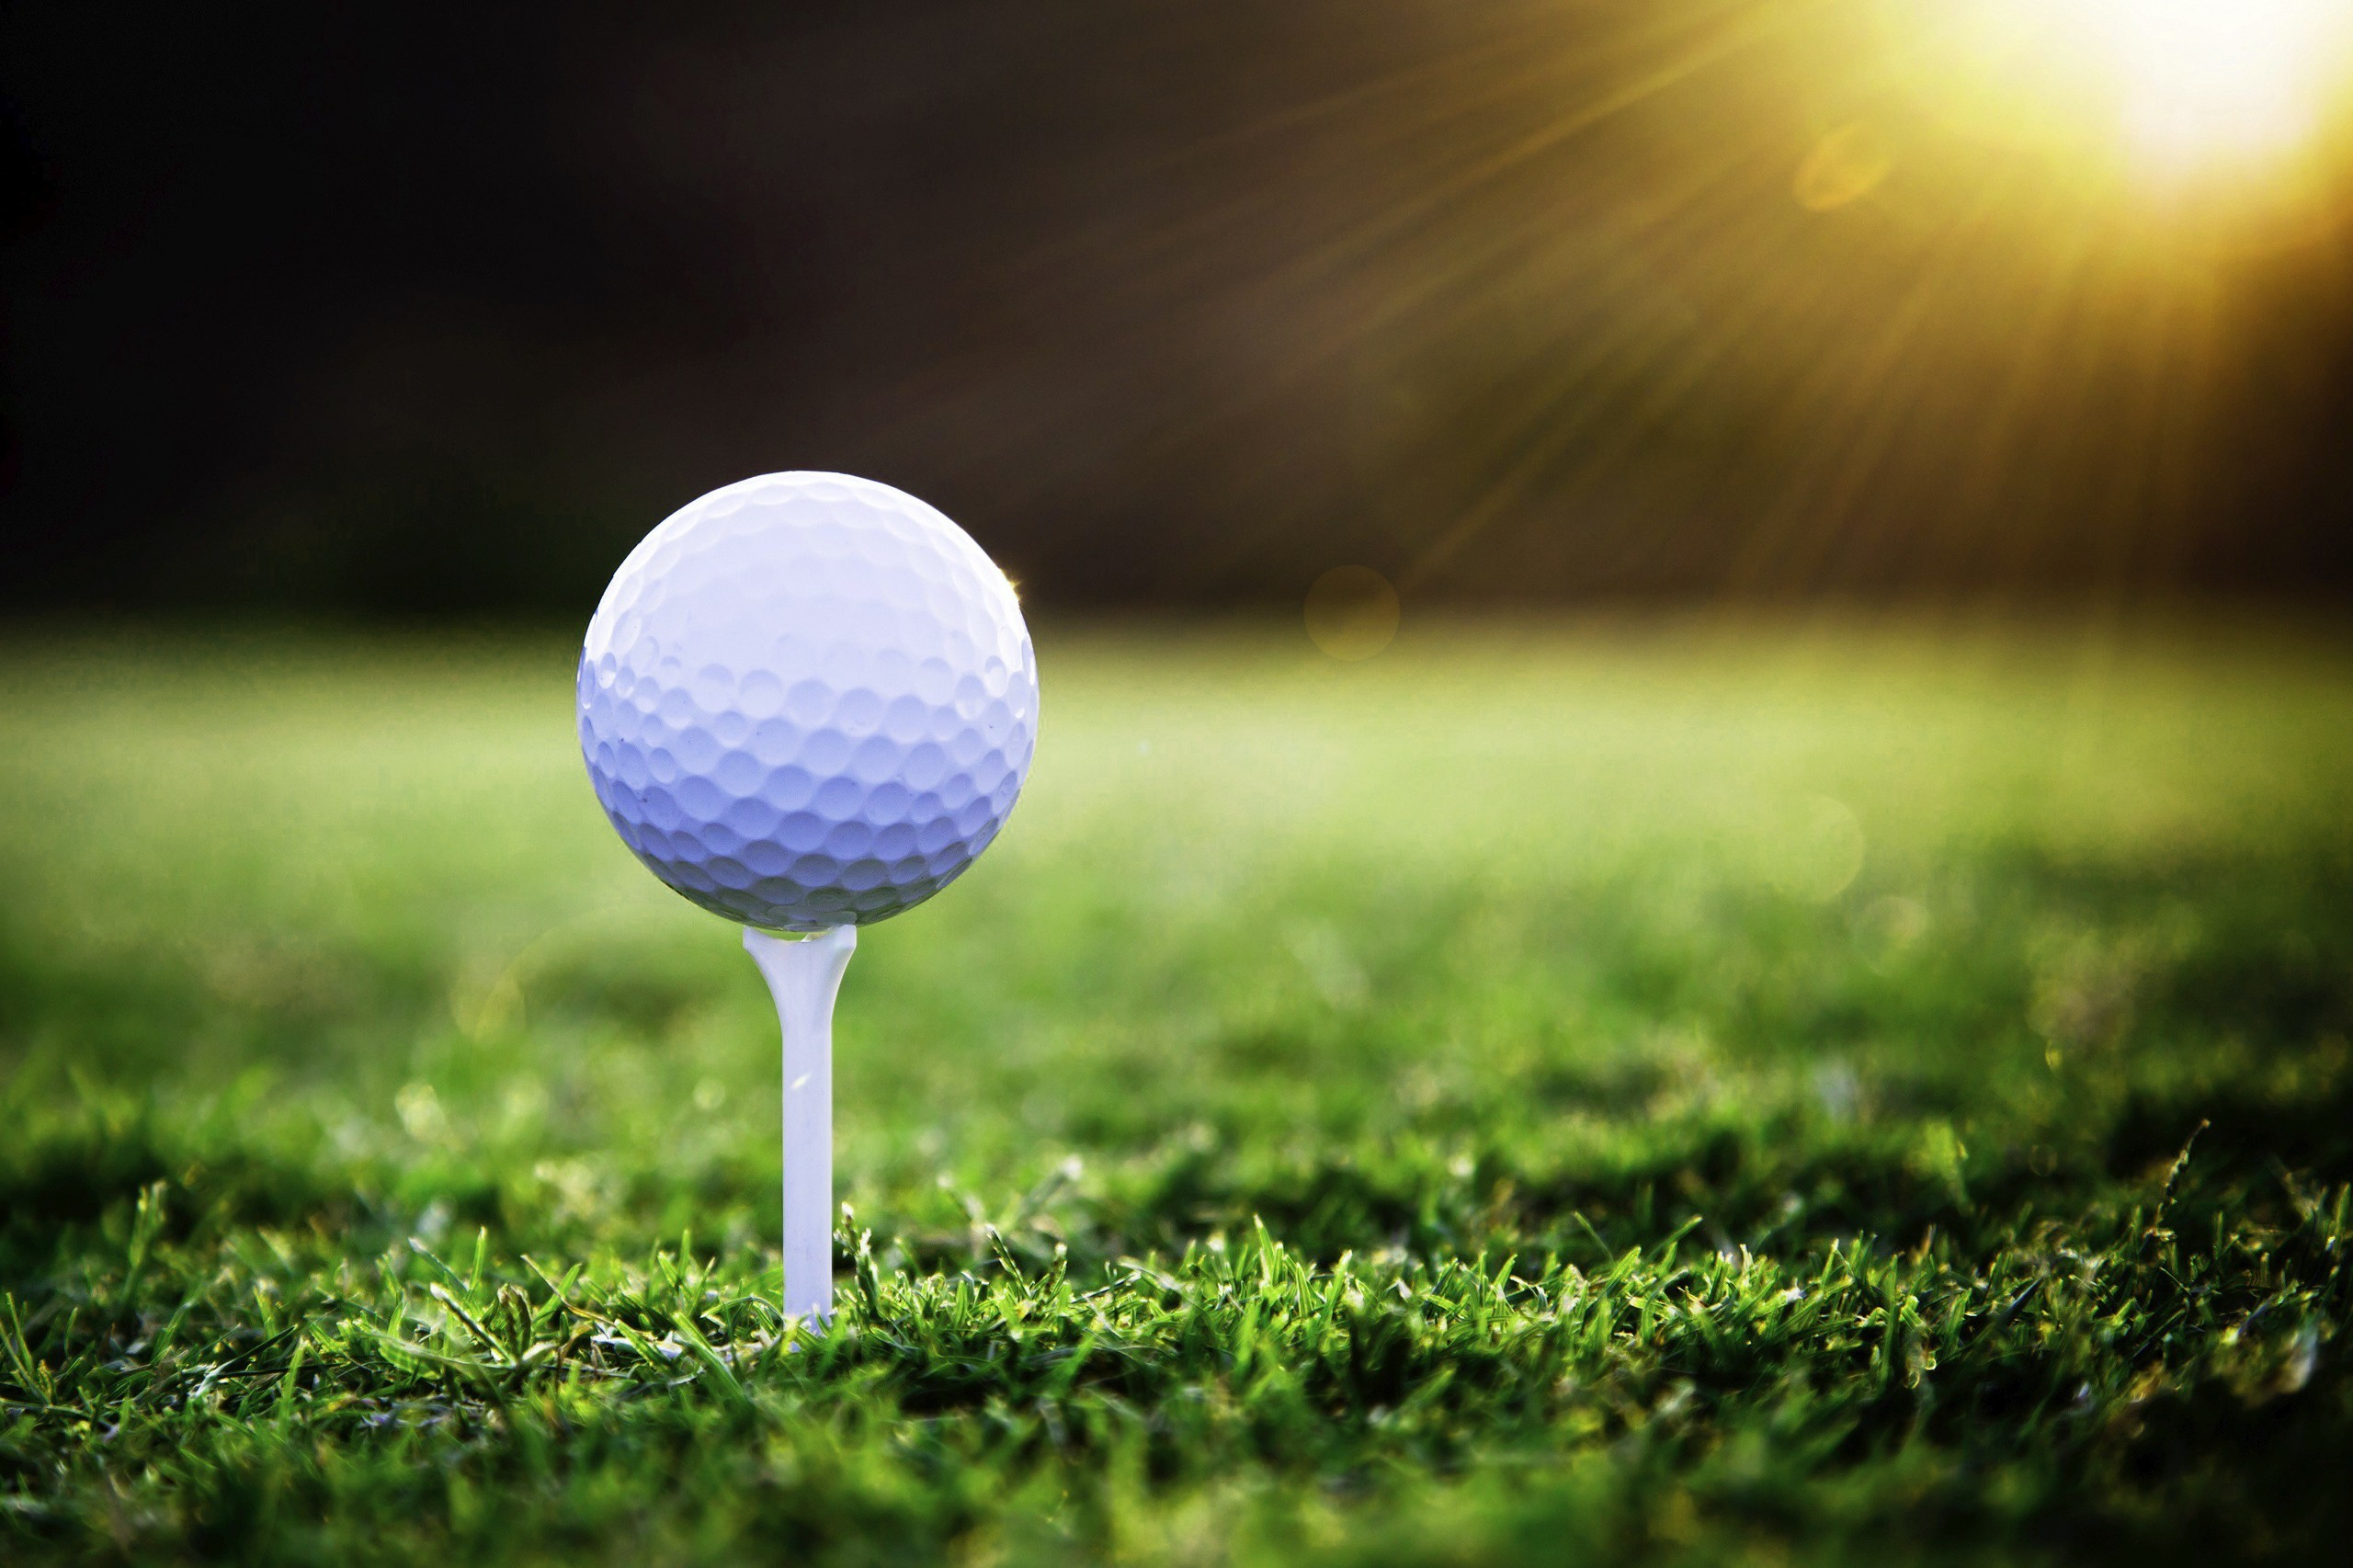 Res: 2560x1706, golf ball new hd wallpaper hd wallpapers free high definition amazing  background wallpapers samsung phone wallpapers widescreen display 2560×1706  Wallpaper ...